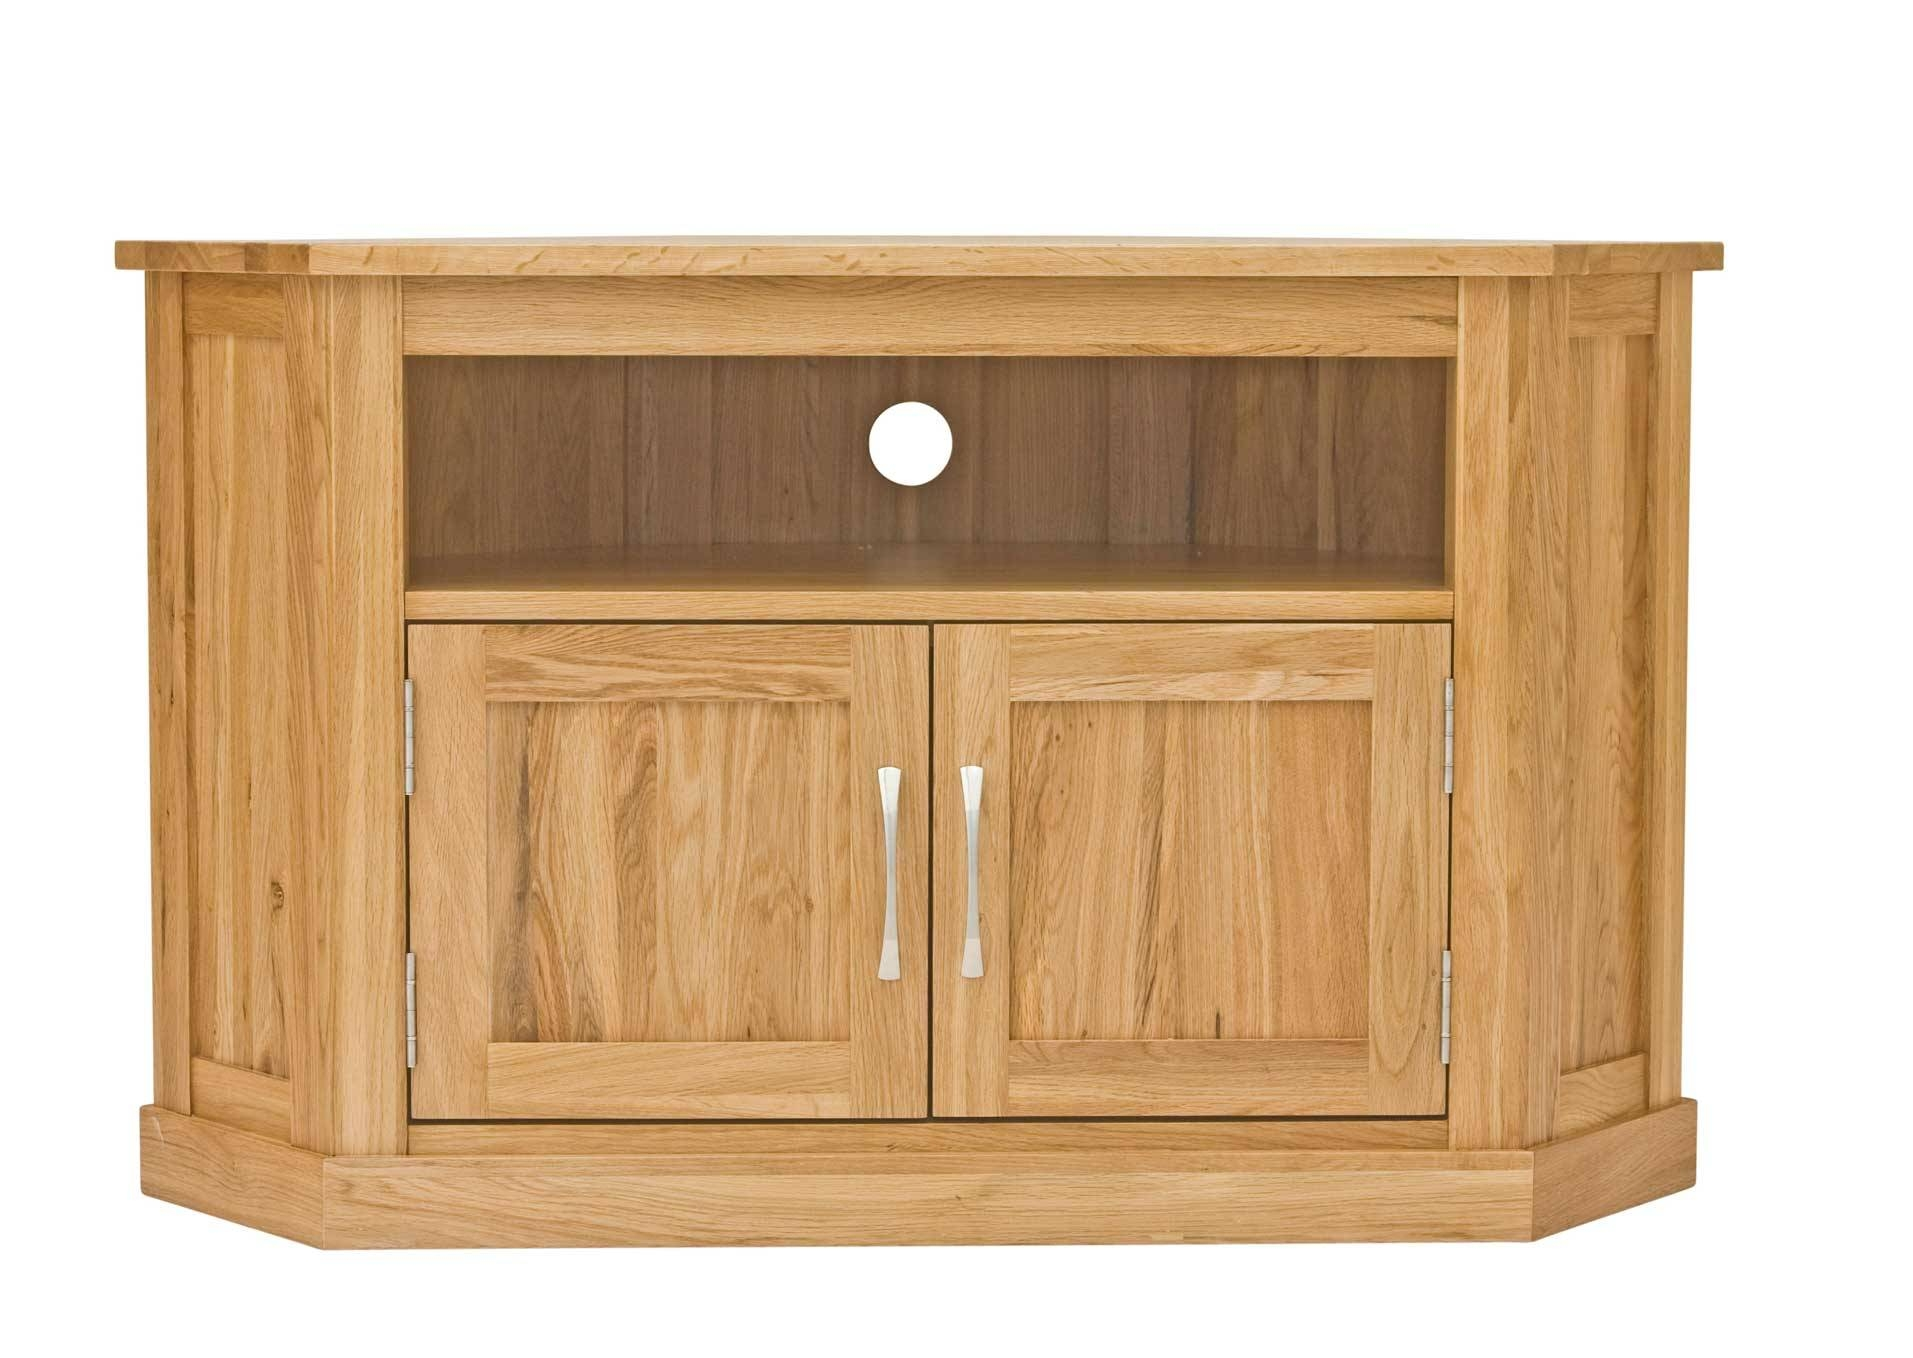 Classic Oak Corner Television Cabinet | Hampshire Furniture pertaining to Corner Tv Cabinets (Image 5 of 15)